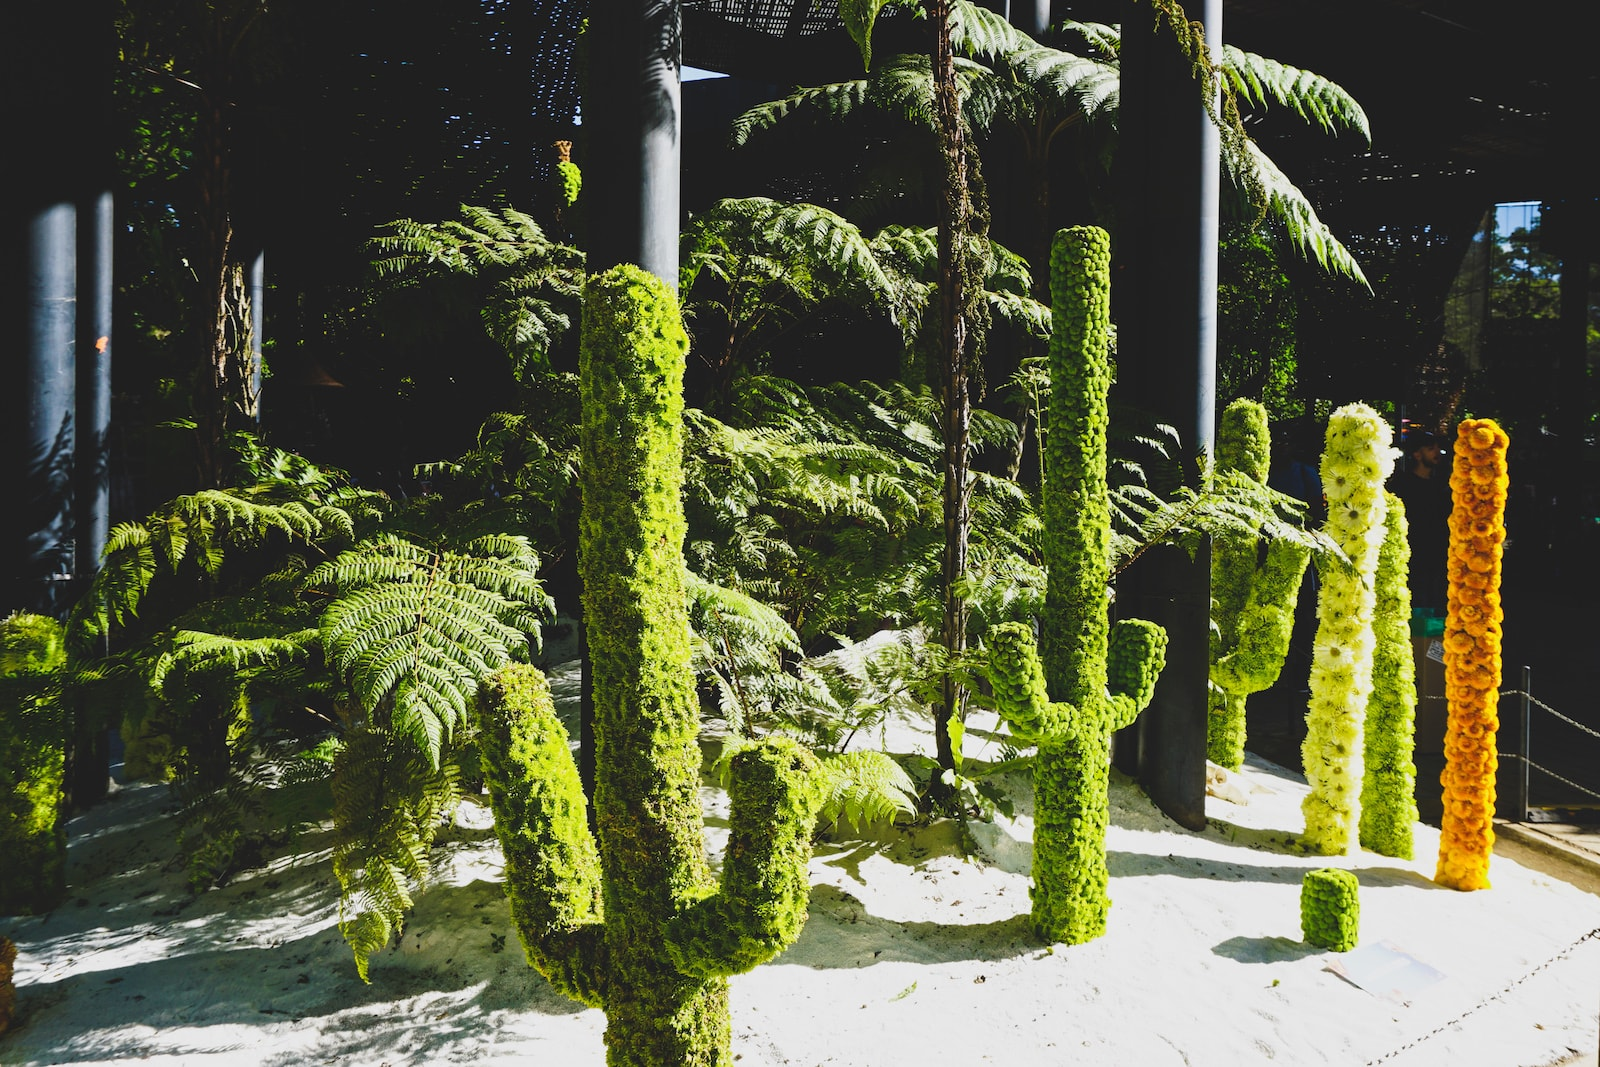 cactus made of flowers at Jardin Botanico during flower festival in Medellin